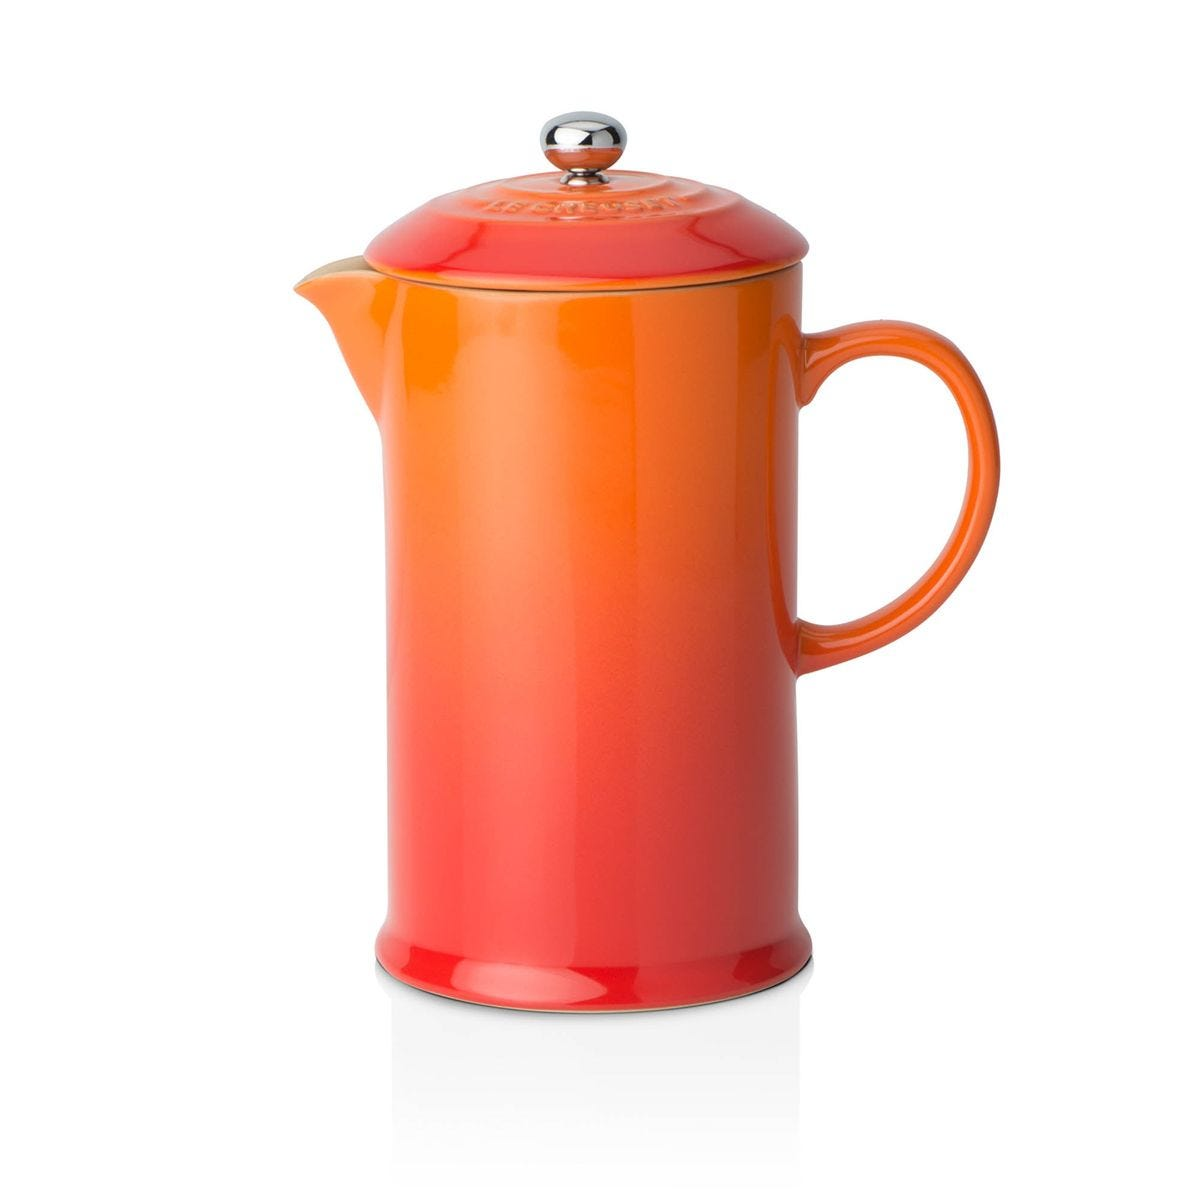 Le Creuset Stoneware Cafetiere with Metal Press Volcanic